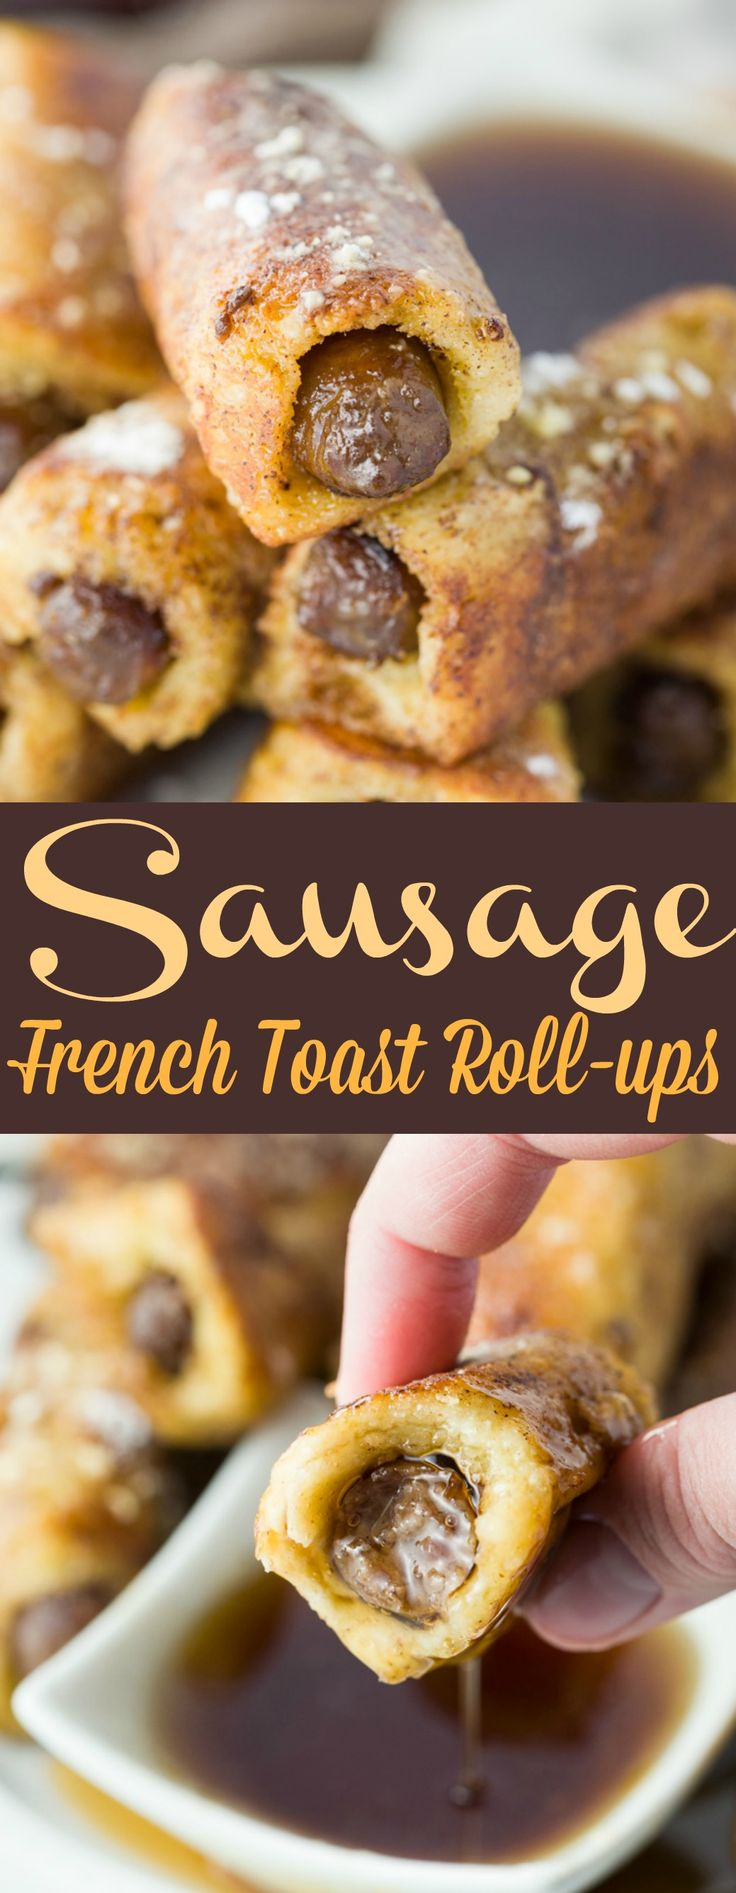 Warm, savory sausage wrapped in fresh bread that's dipped in a classic french toast mixture and cooked to golden-brown perfection. Served with syrup for dunking, this breakfast is perfect for both kids and adults!